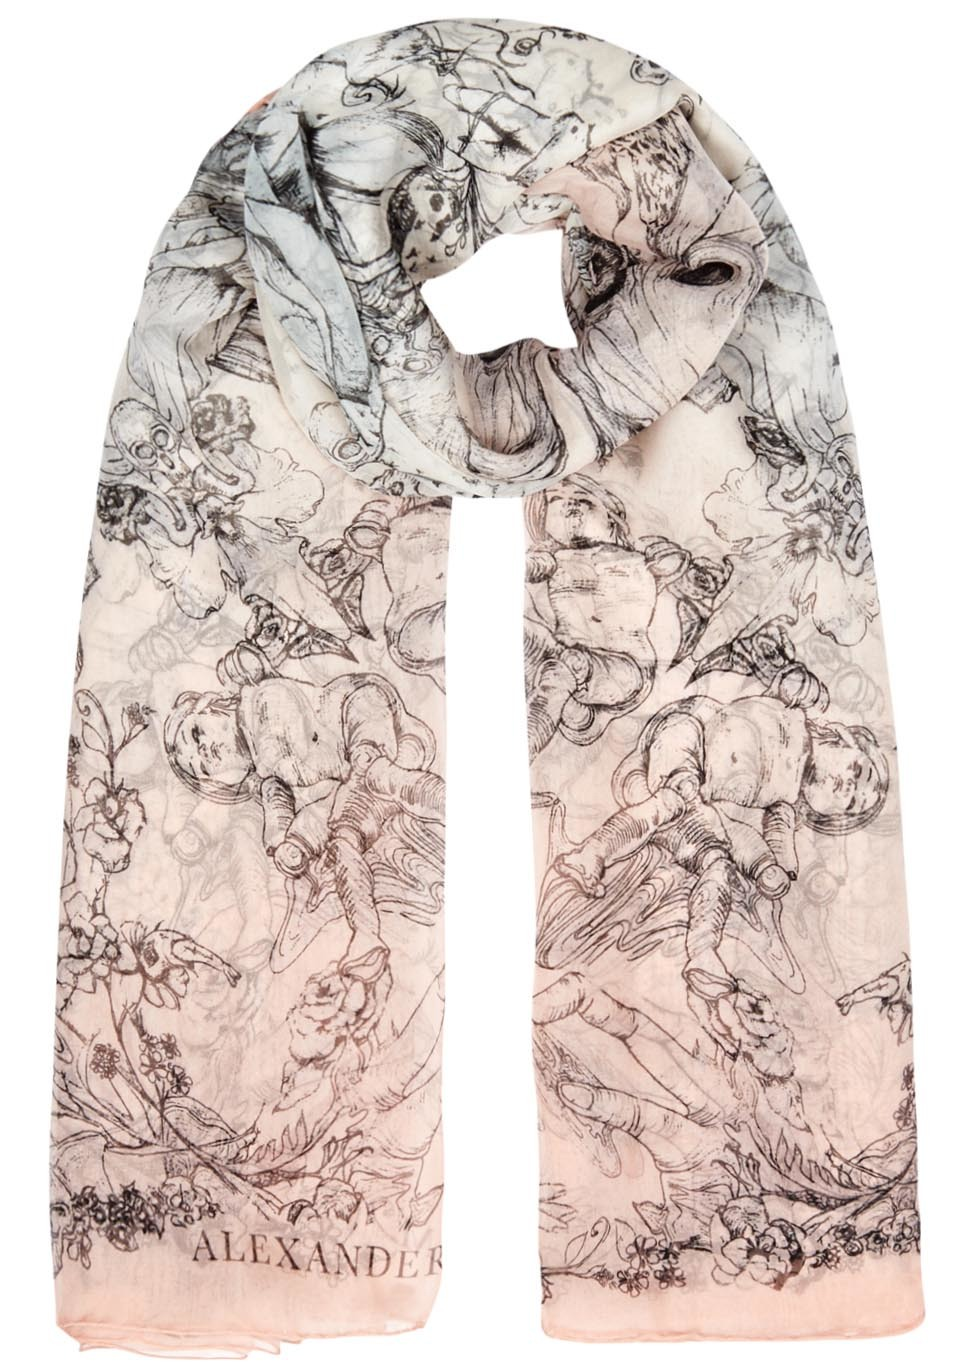 Paris Wallpaper Silk Chiffon Scarf - predominant colour: blush; secondary colour: black; occasions: casual, creative work; type of pattern: standard; style: regular; size: standard; material: fabric; pattern: patterned/print; season: s/s 2016; wardrobe: highlight